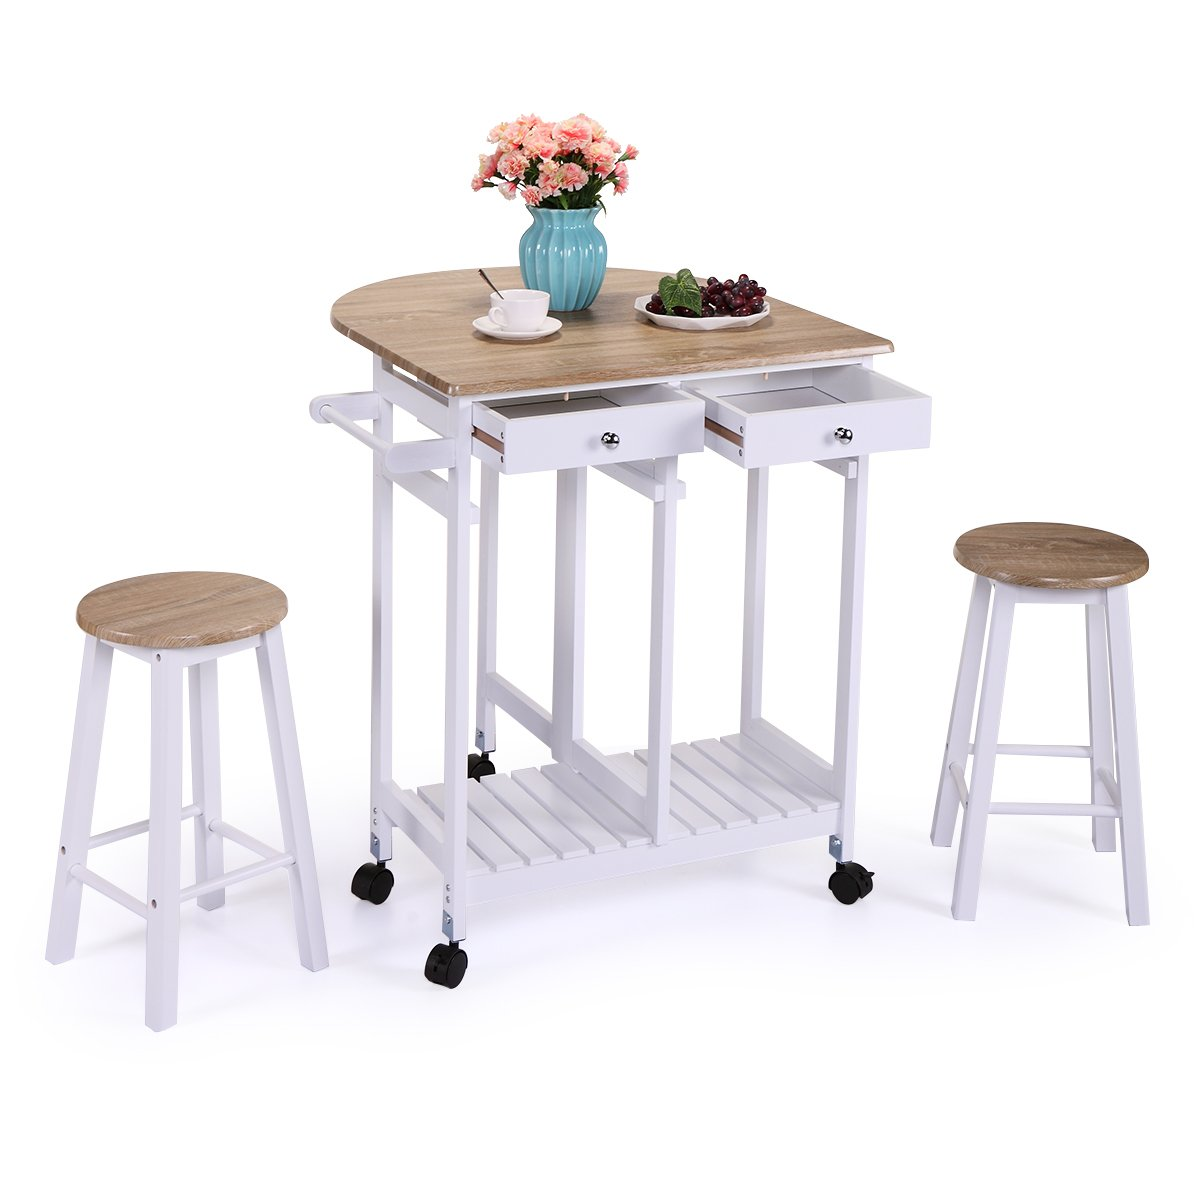 LAZYMOON Oak Wood Drop Leaf Kitchen Table Trolley Island Cart Home Storage Table Set w/2 Stools